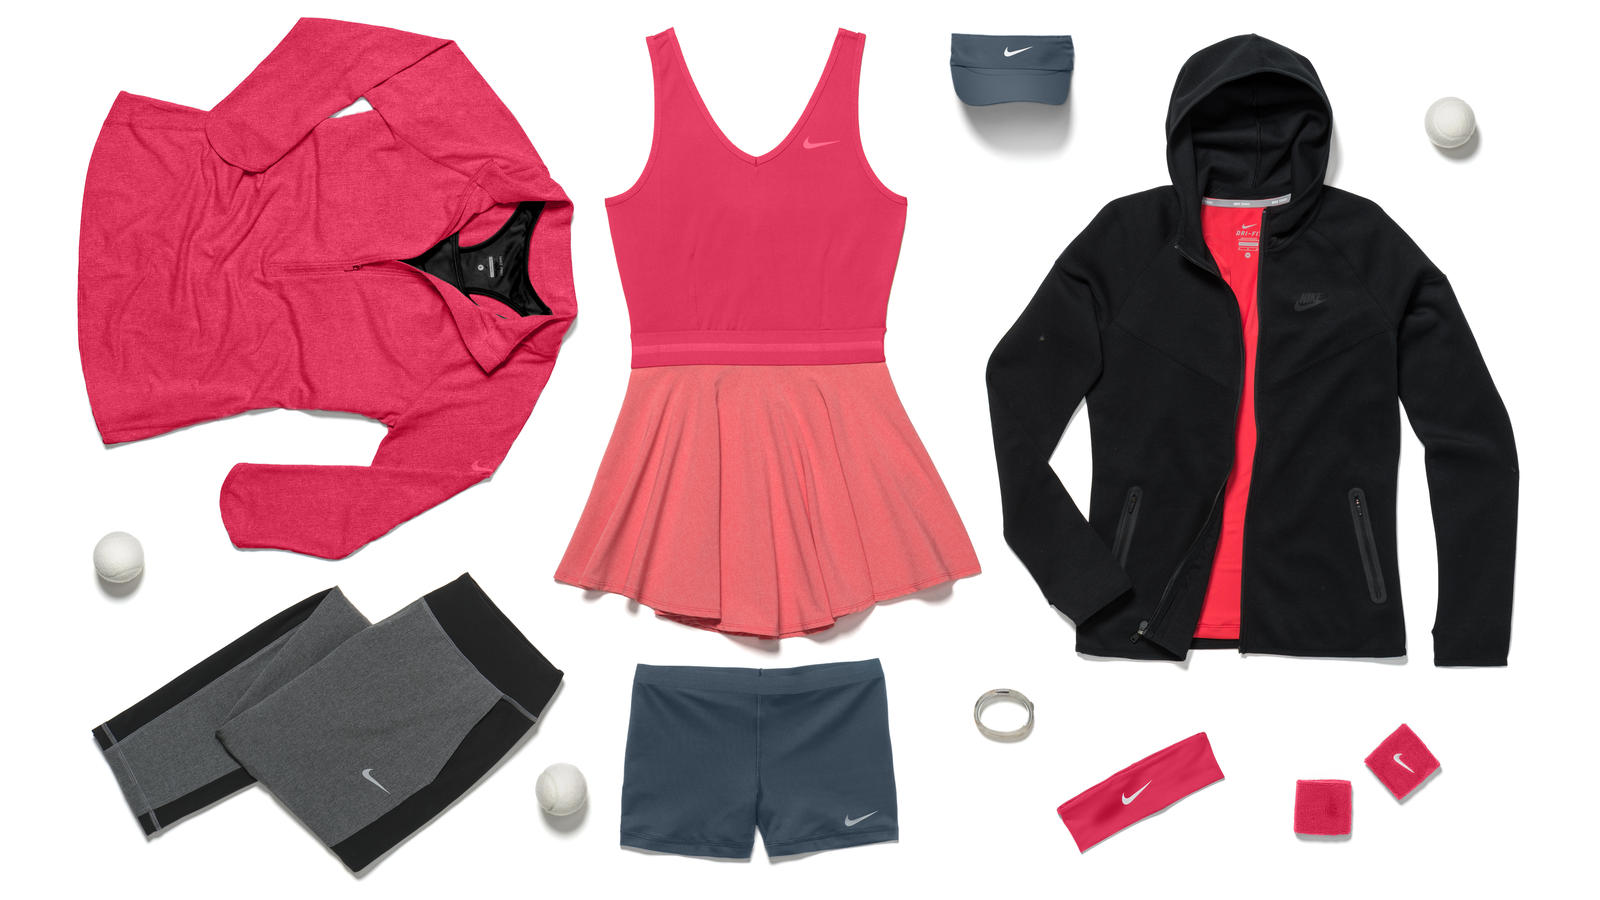 Nike Tennis Reveals Athlete Looks for New York Nike News